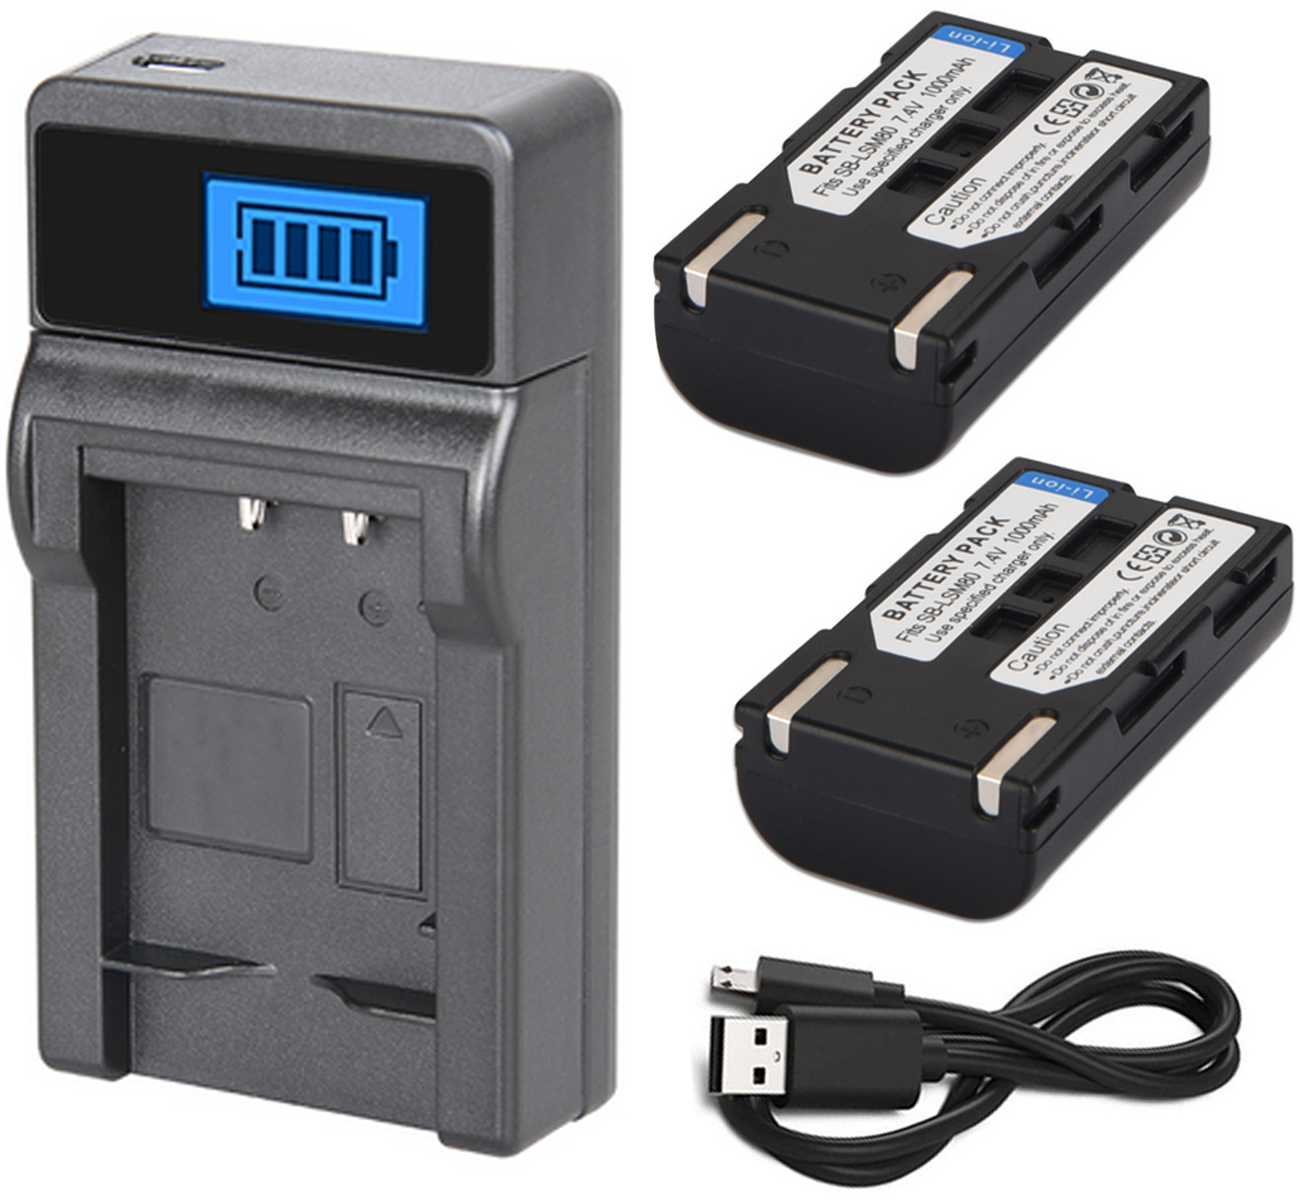 Rechargeable Lithium-ion Battery Pack + Charger For Samsung SB-LSM80, SBLSM80, SB-LSM160, SBLSM160, SB-LSM320, SBLSM320